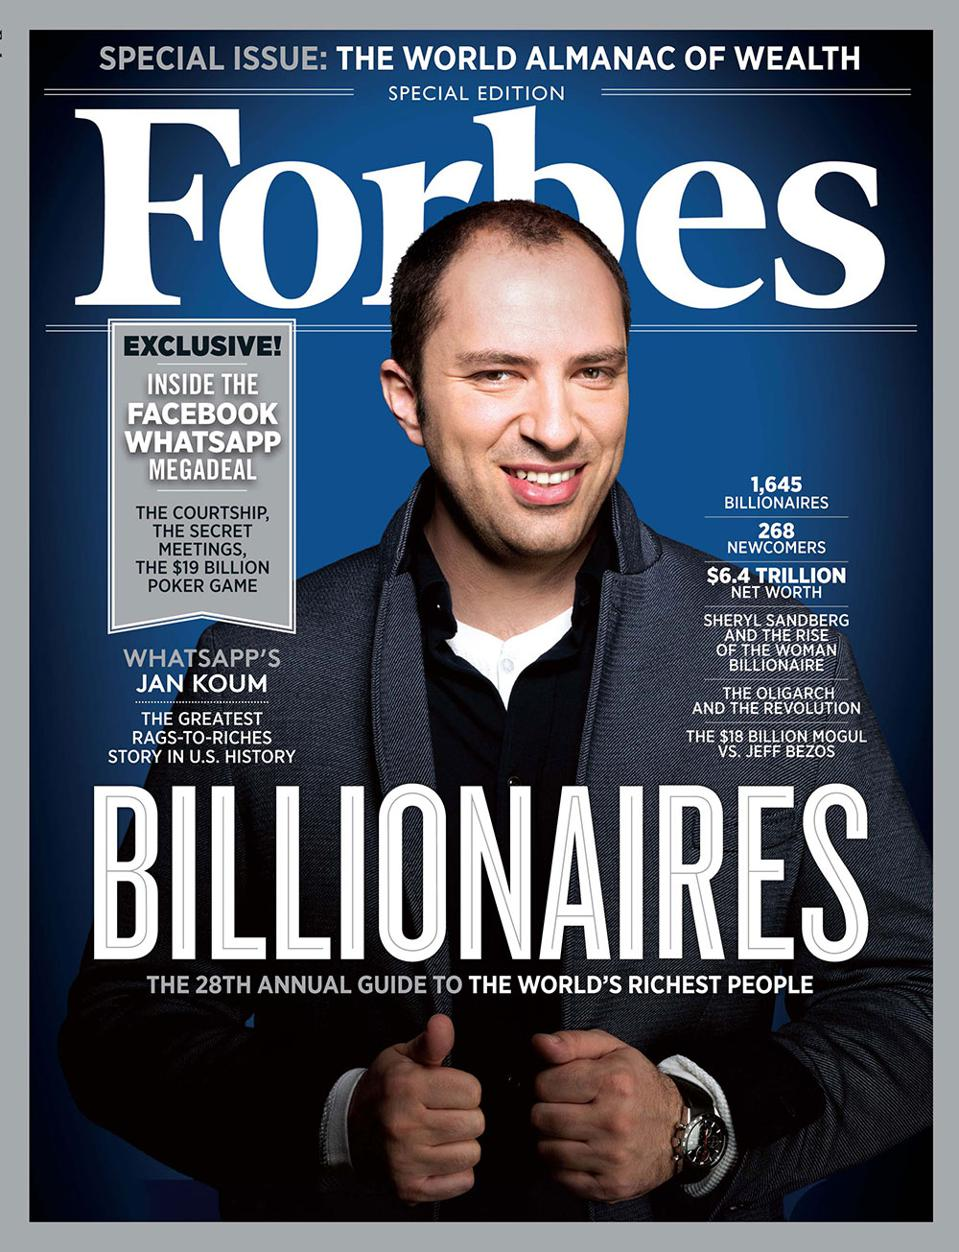 Jan Koum immigrated to California when he was 16, then dropped out of college to join Yahoo. In 2009, he bought his first iPhone and then started WhatsApp, bringing his former Yahoo friend Acton on as a cofounder.